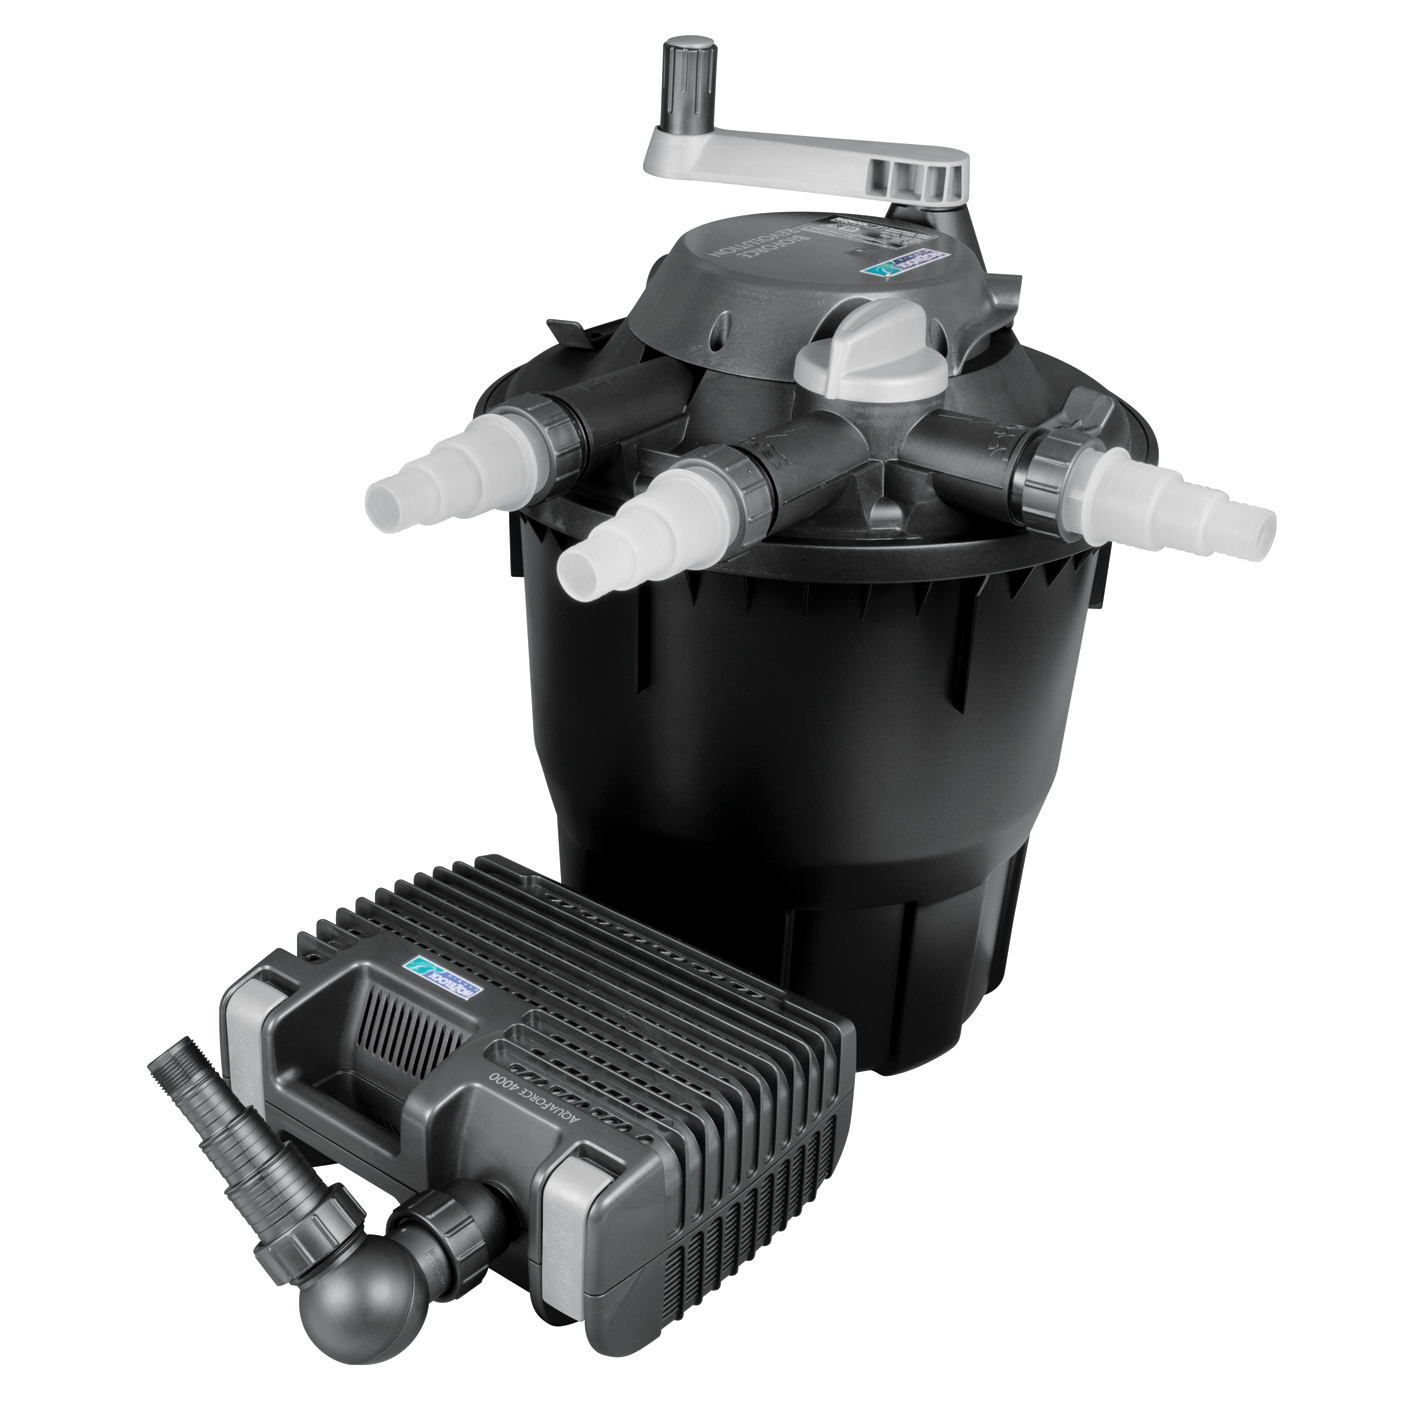 New hozelock bioforce revolution 6000 uvc filtration for Pond pump and filter system